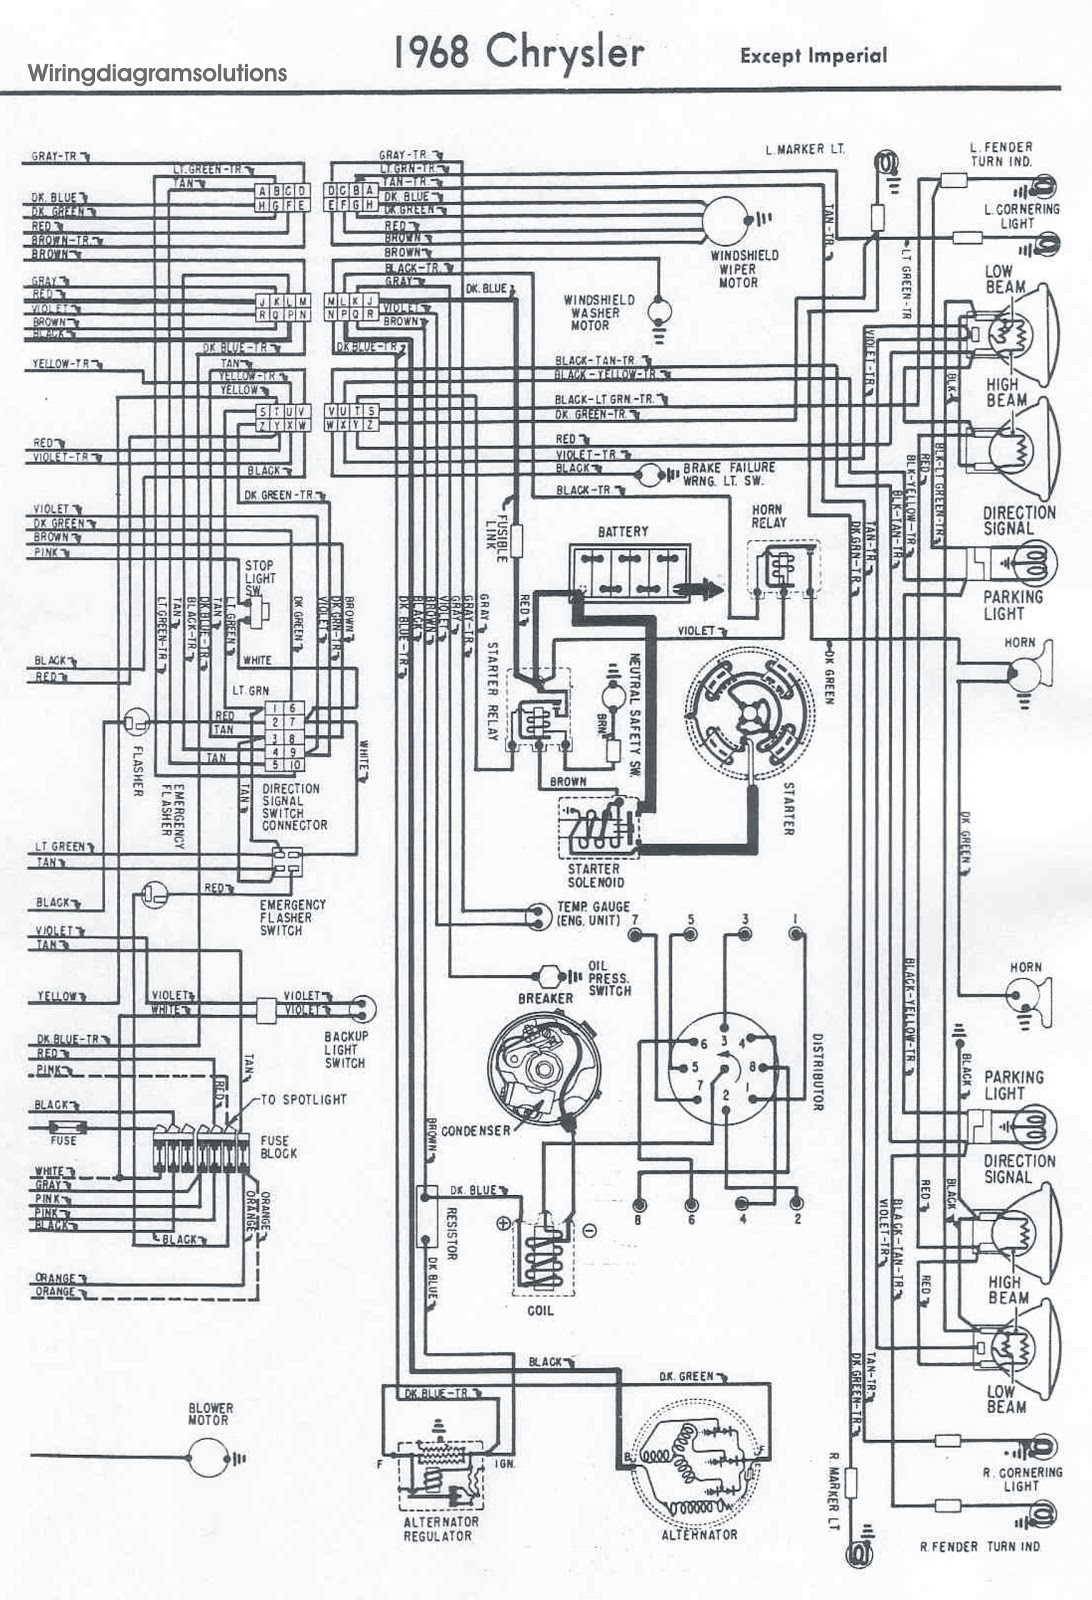 1968's Chrysler All Models Electrical Wiring Diagram ...